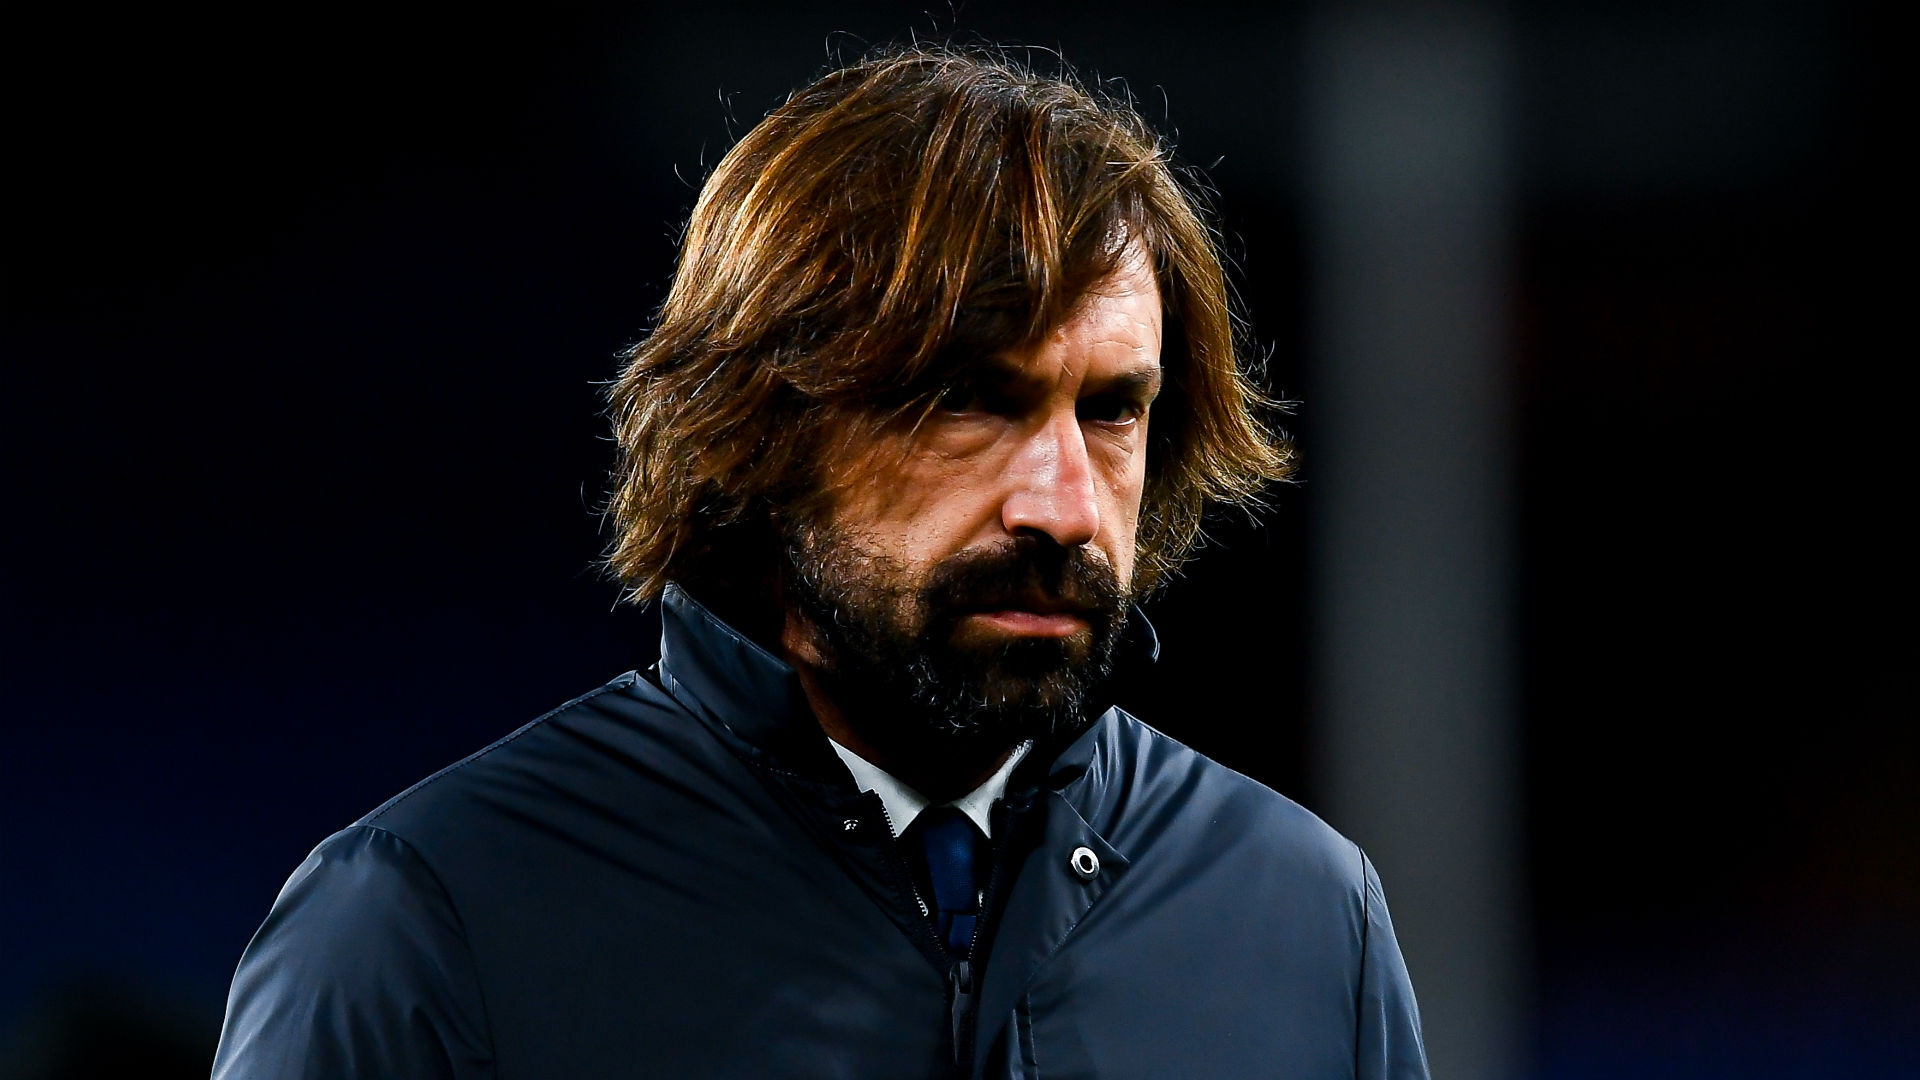 Juventus boss Pirlo slammed by Napoli chief De Laurentiis after appeal comment